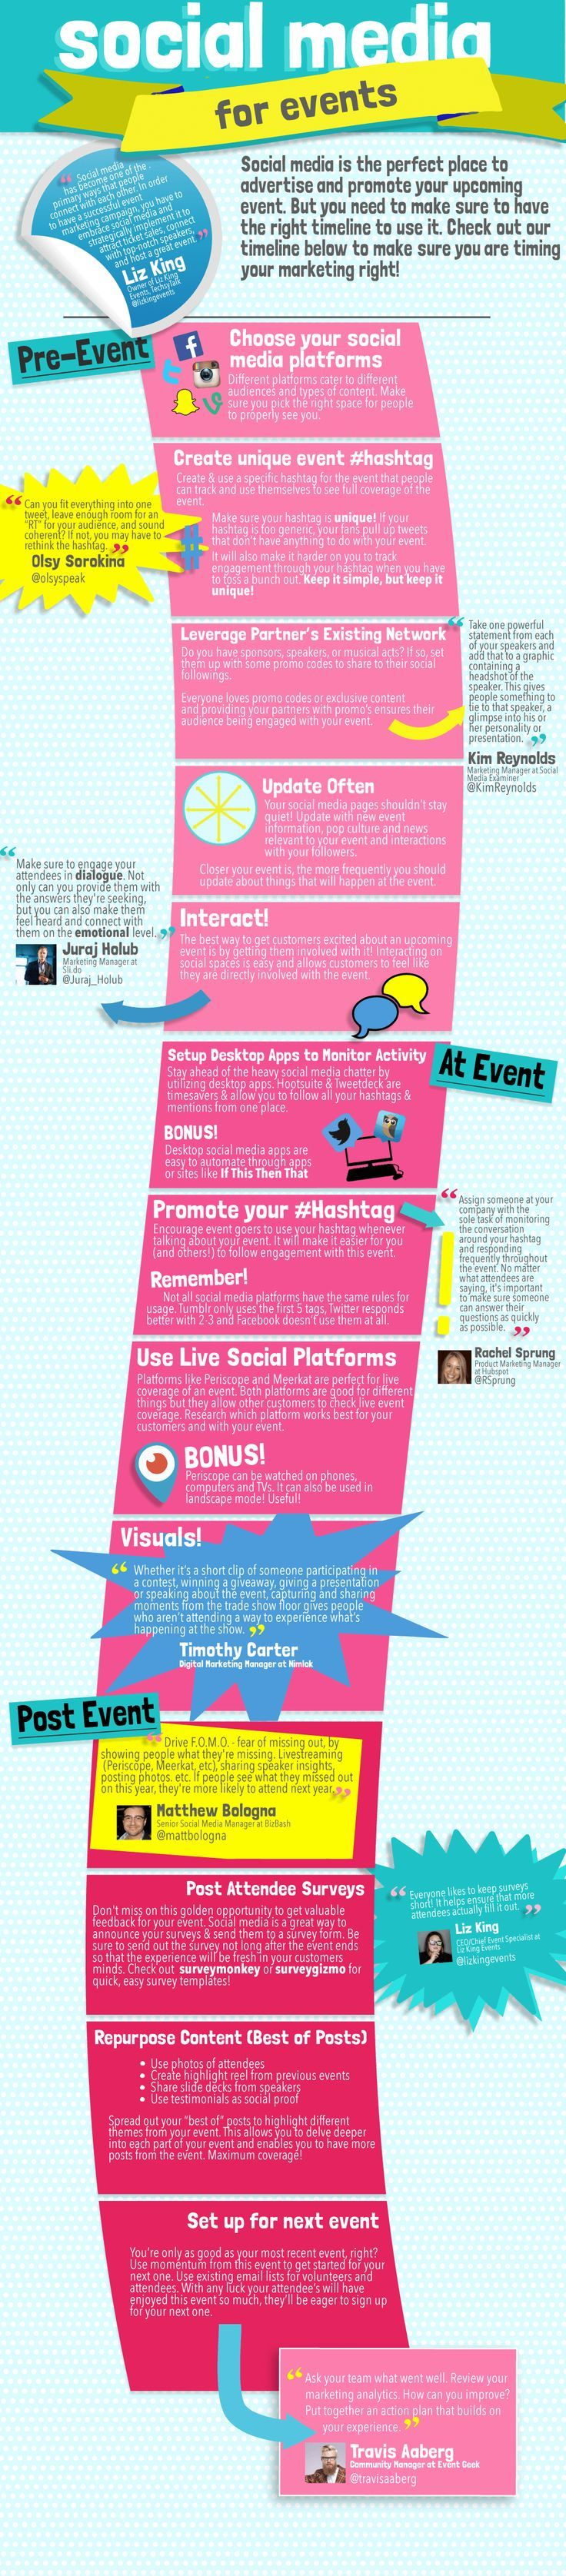 Event marketing can be rough and it all comes down to timing. Social media makes it easier though! Check out our timeline with tips from leading event marketers on the do's and don'ts of when and how to market your event on social media.